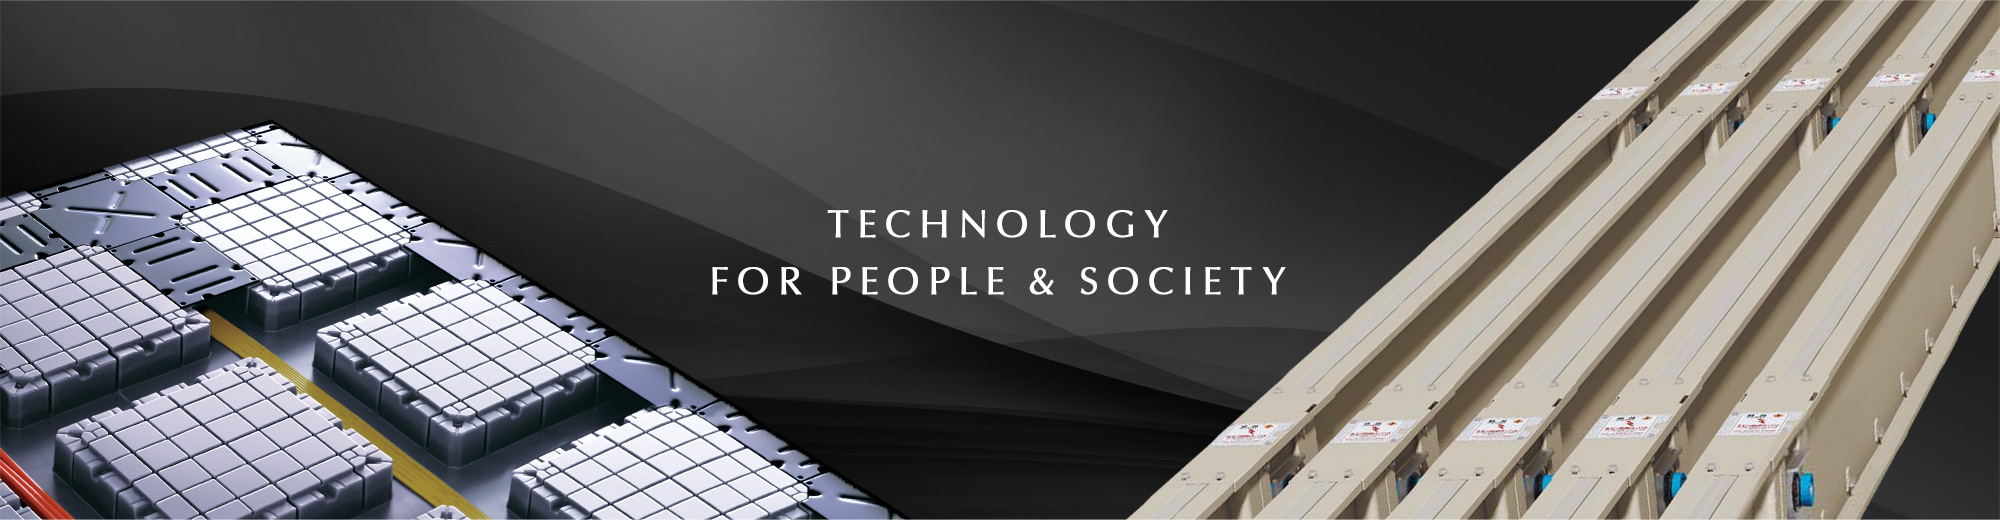 Technology for People & Society